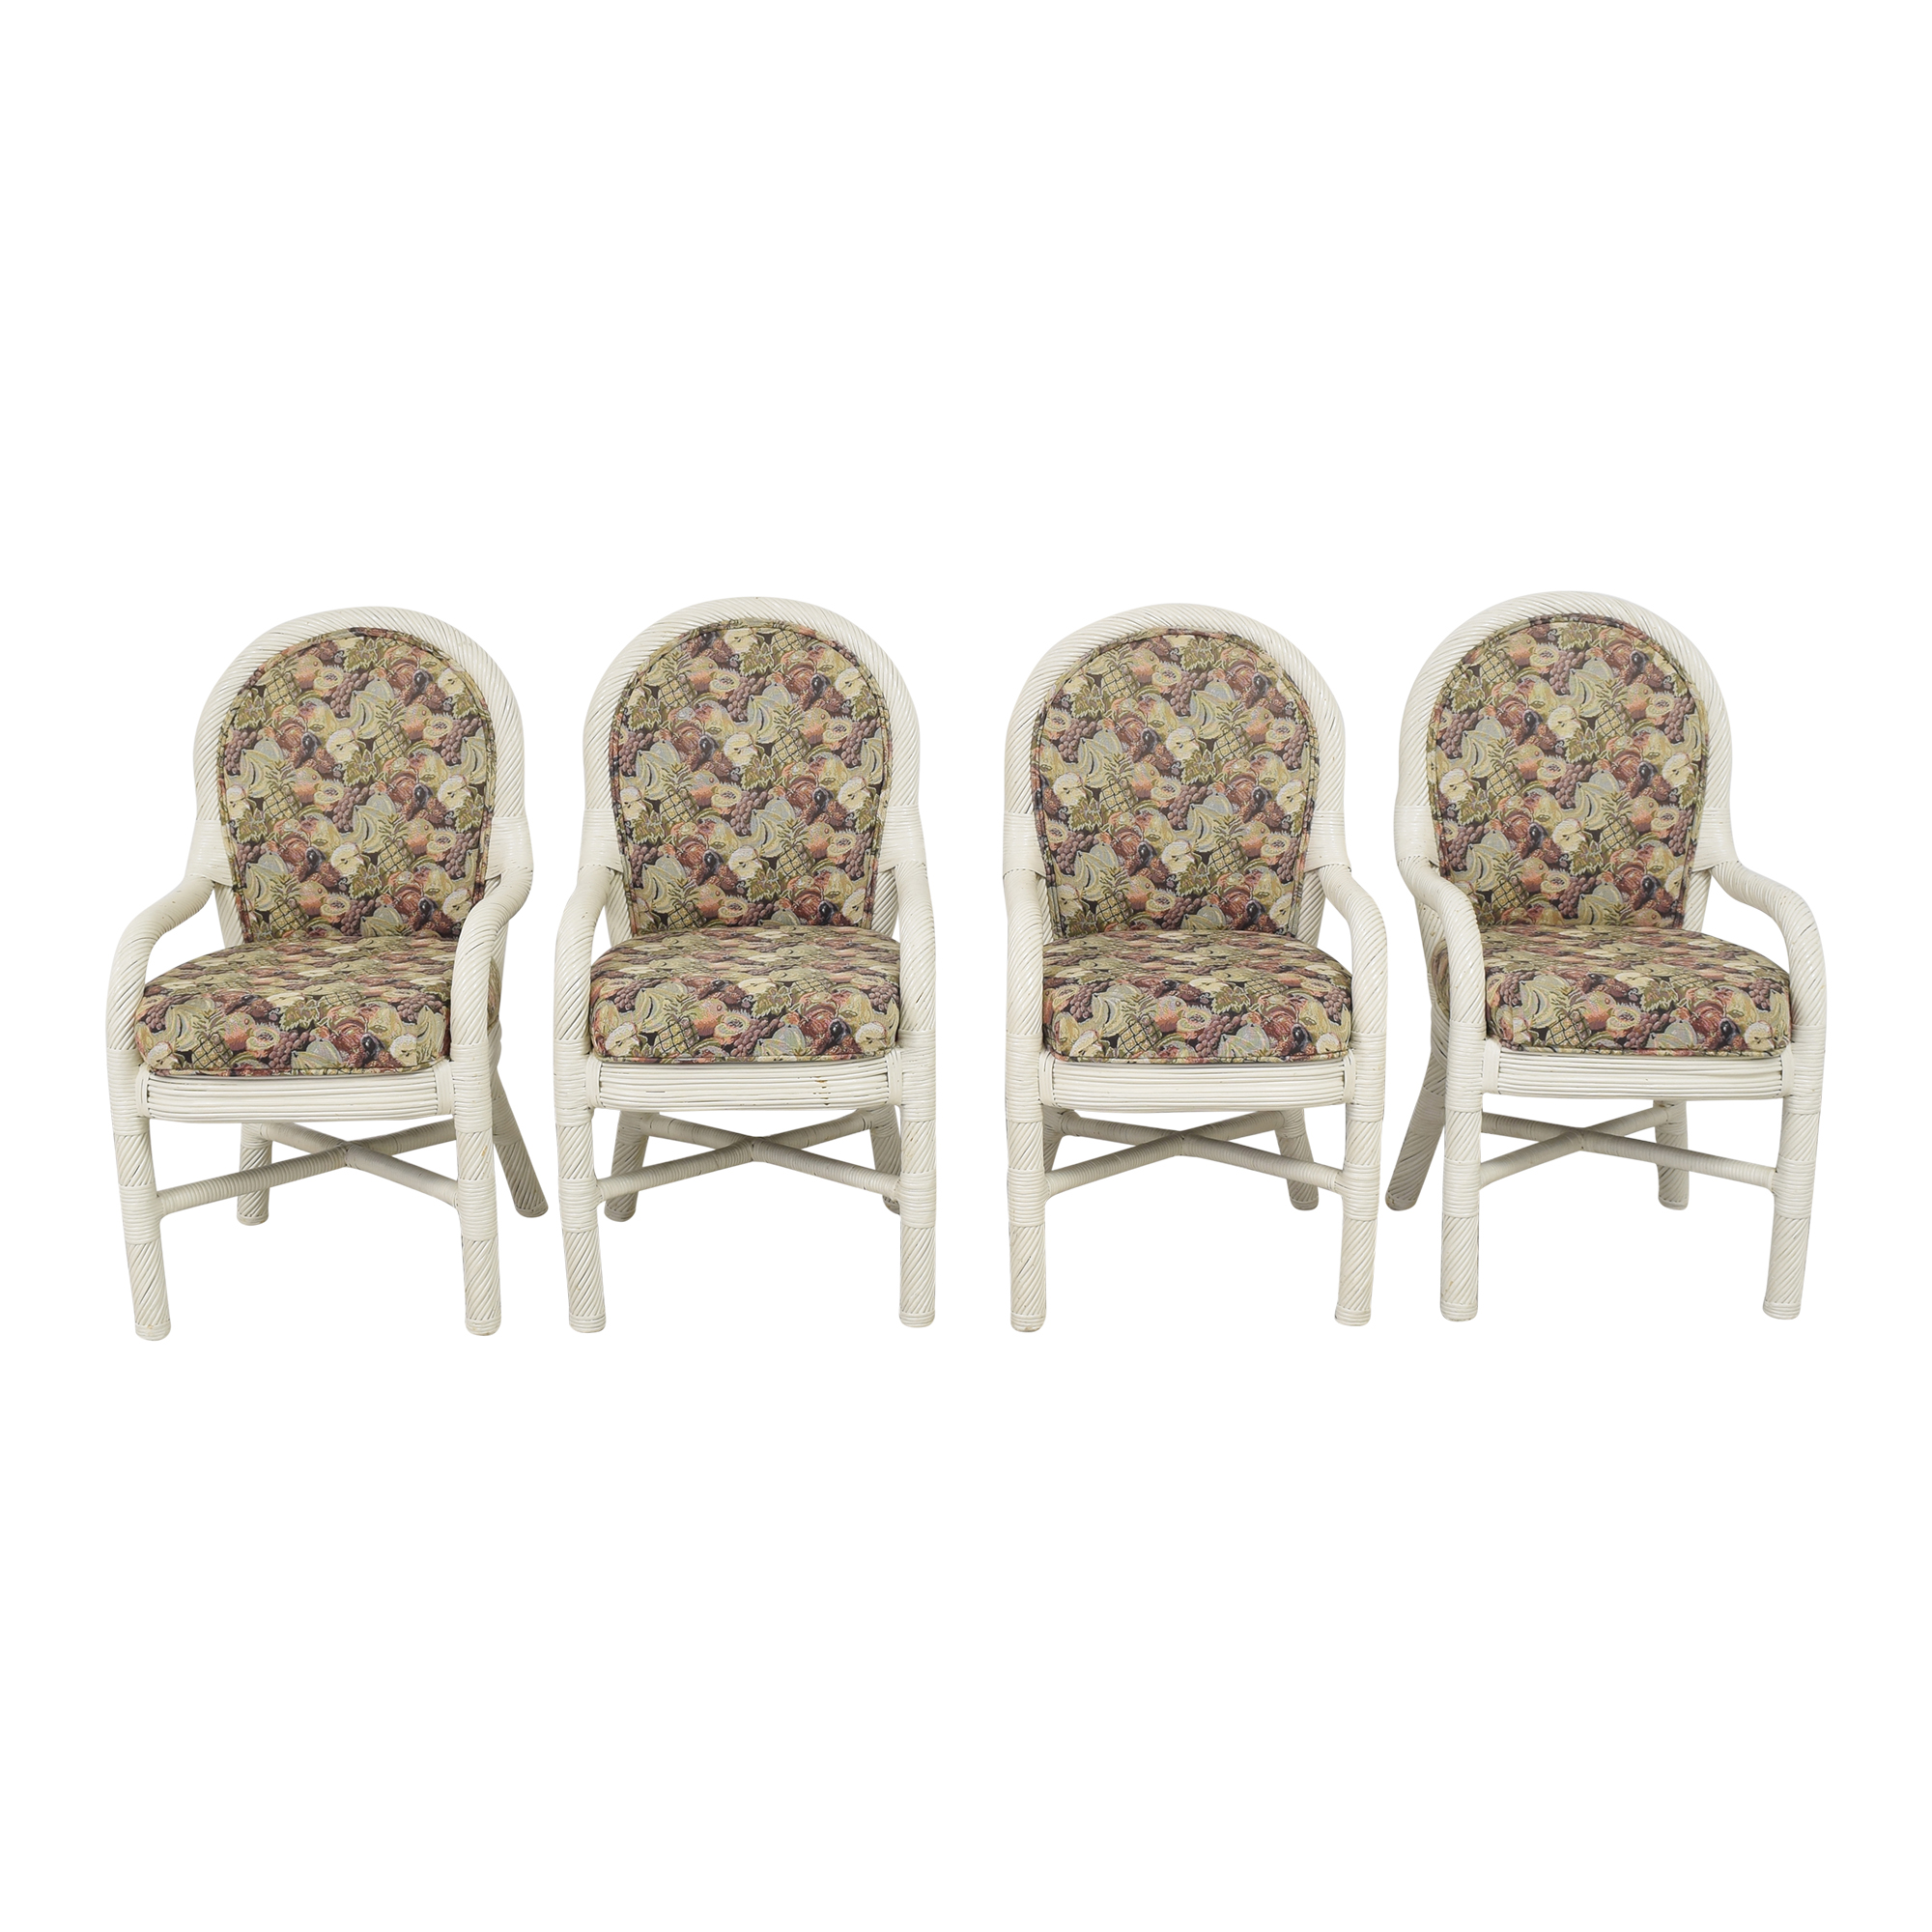 Custom Upholstered Dining Arm Chairs Chairs